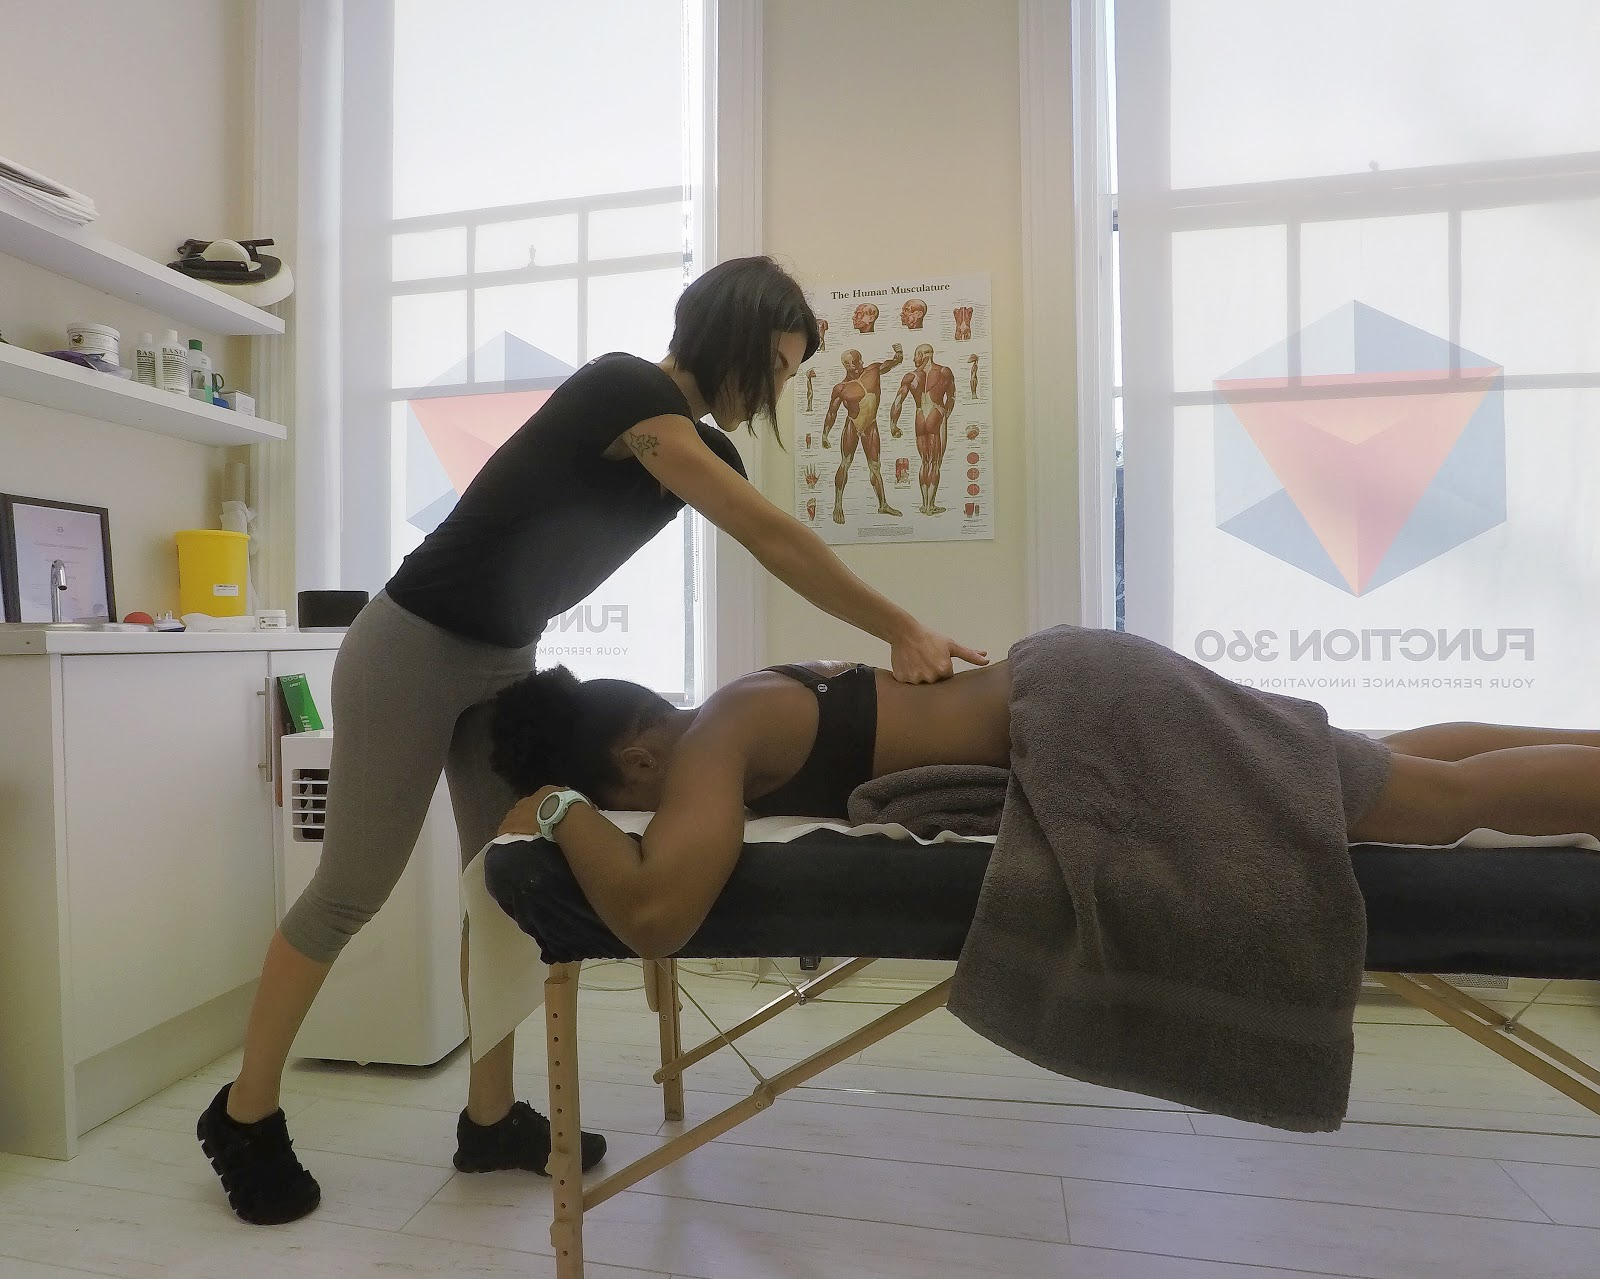 Myofascial Release at Function360 - Elle on the massage bed